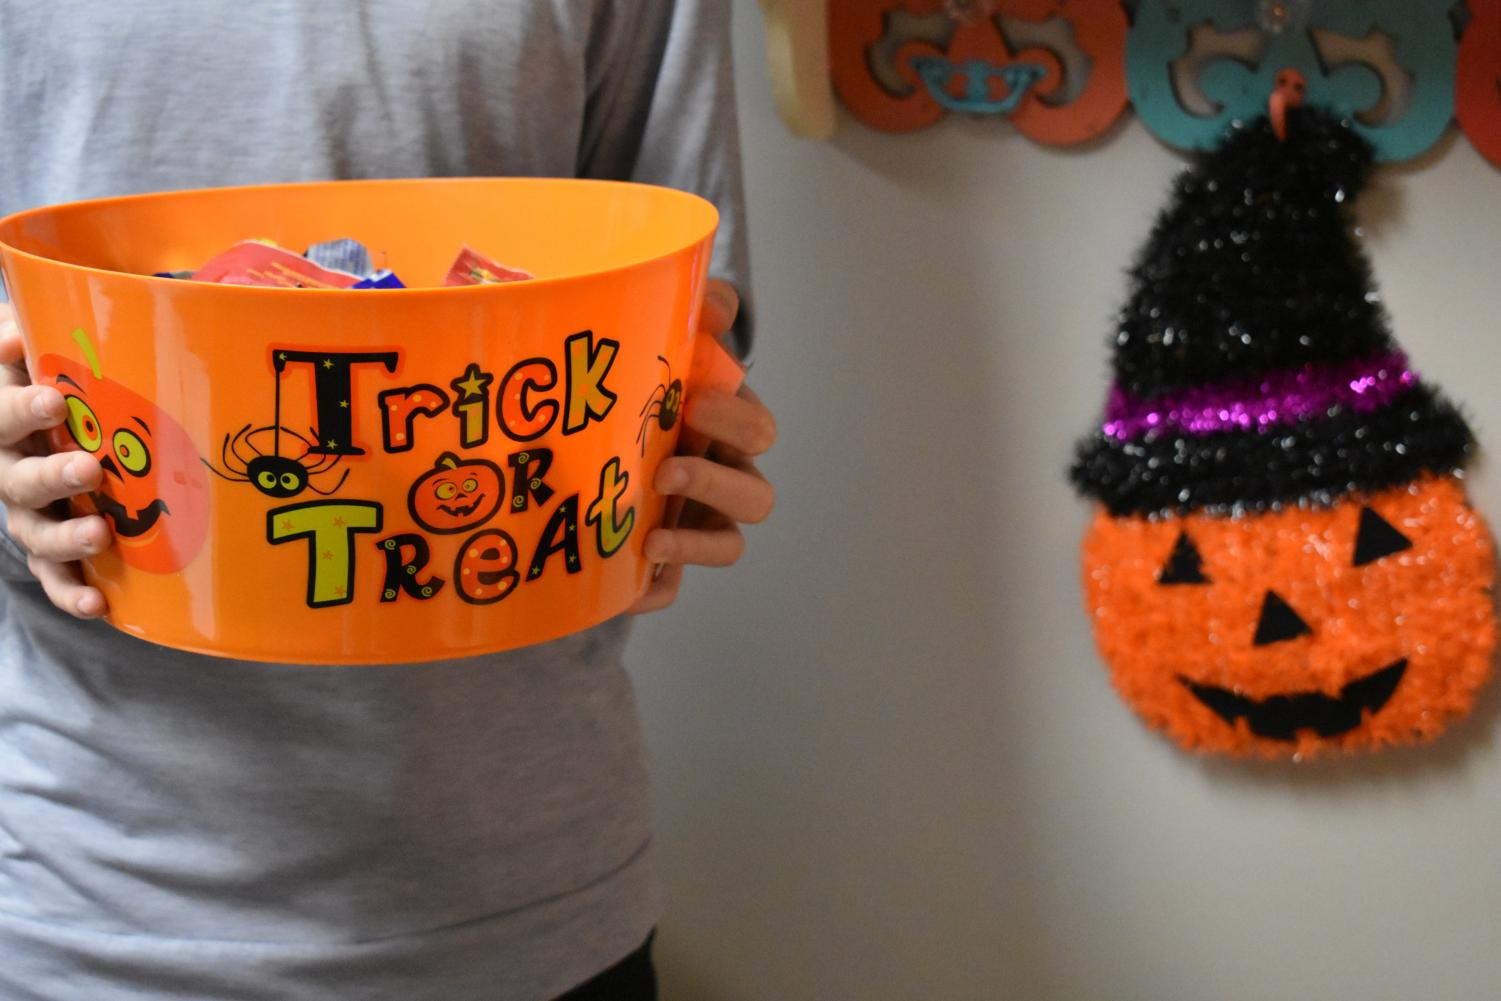 Are teenagers too old to trick or treat?